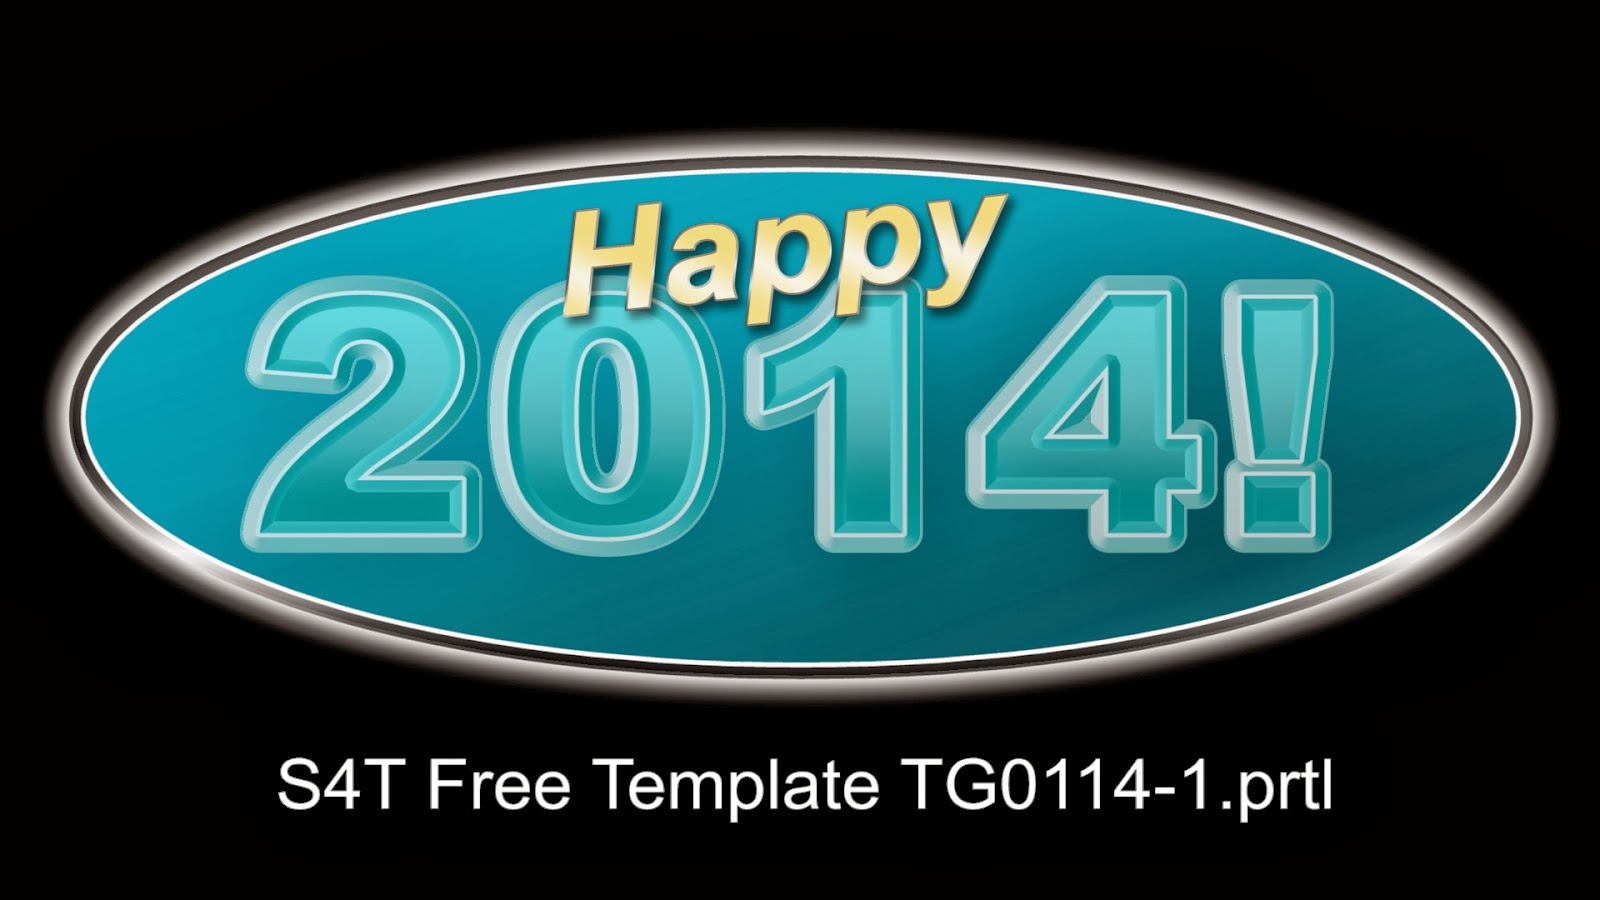 Style4type free s4t premiere pro title template happy 2014 for Premiere pro title templates free